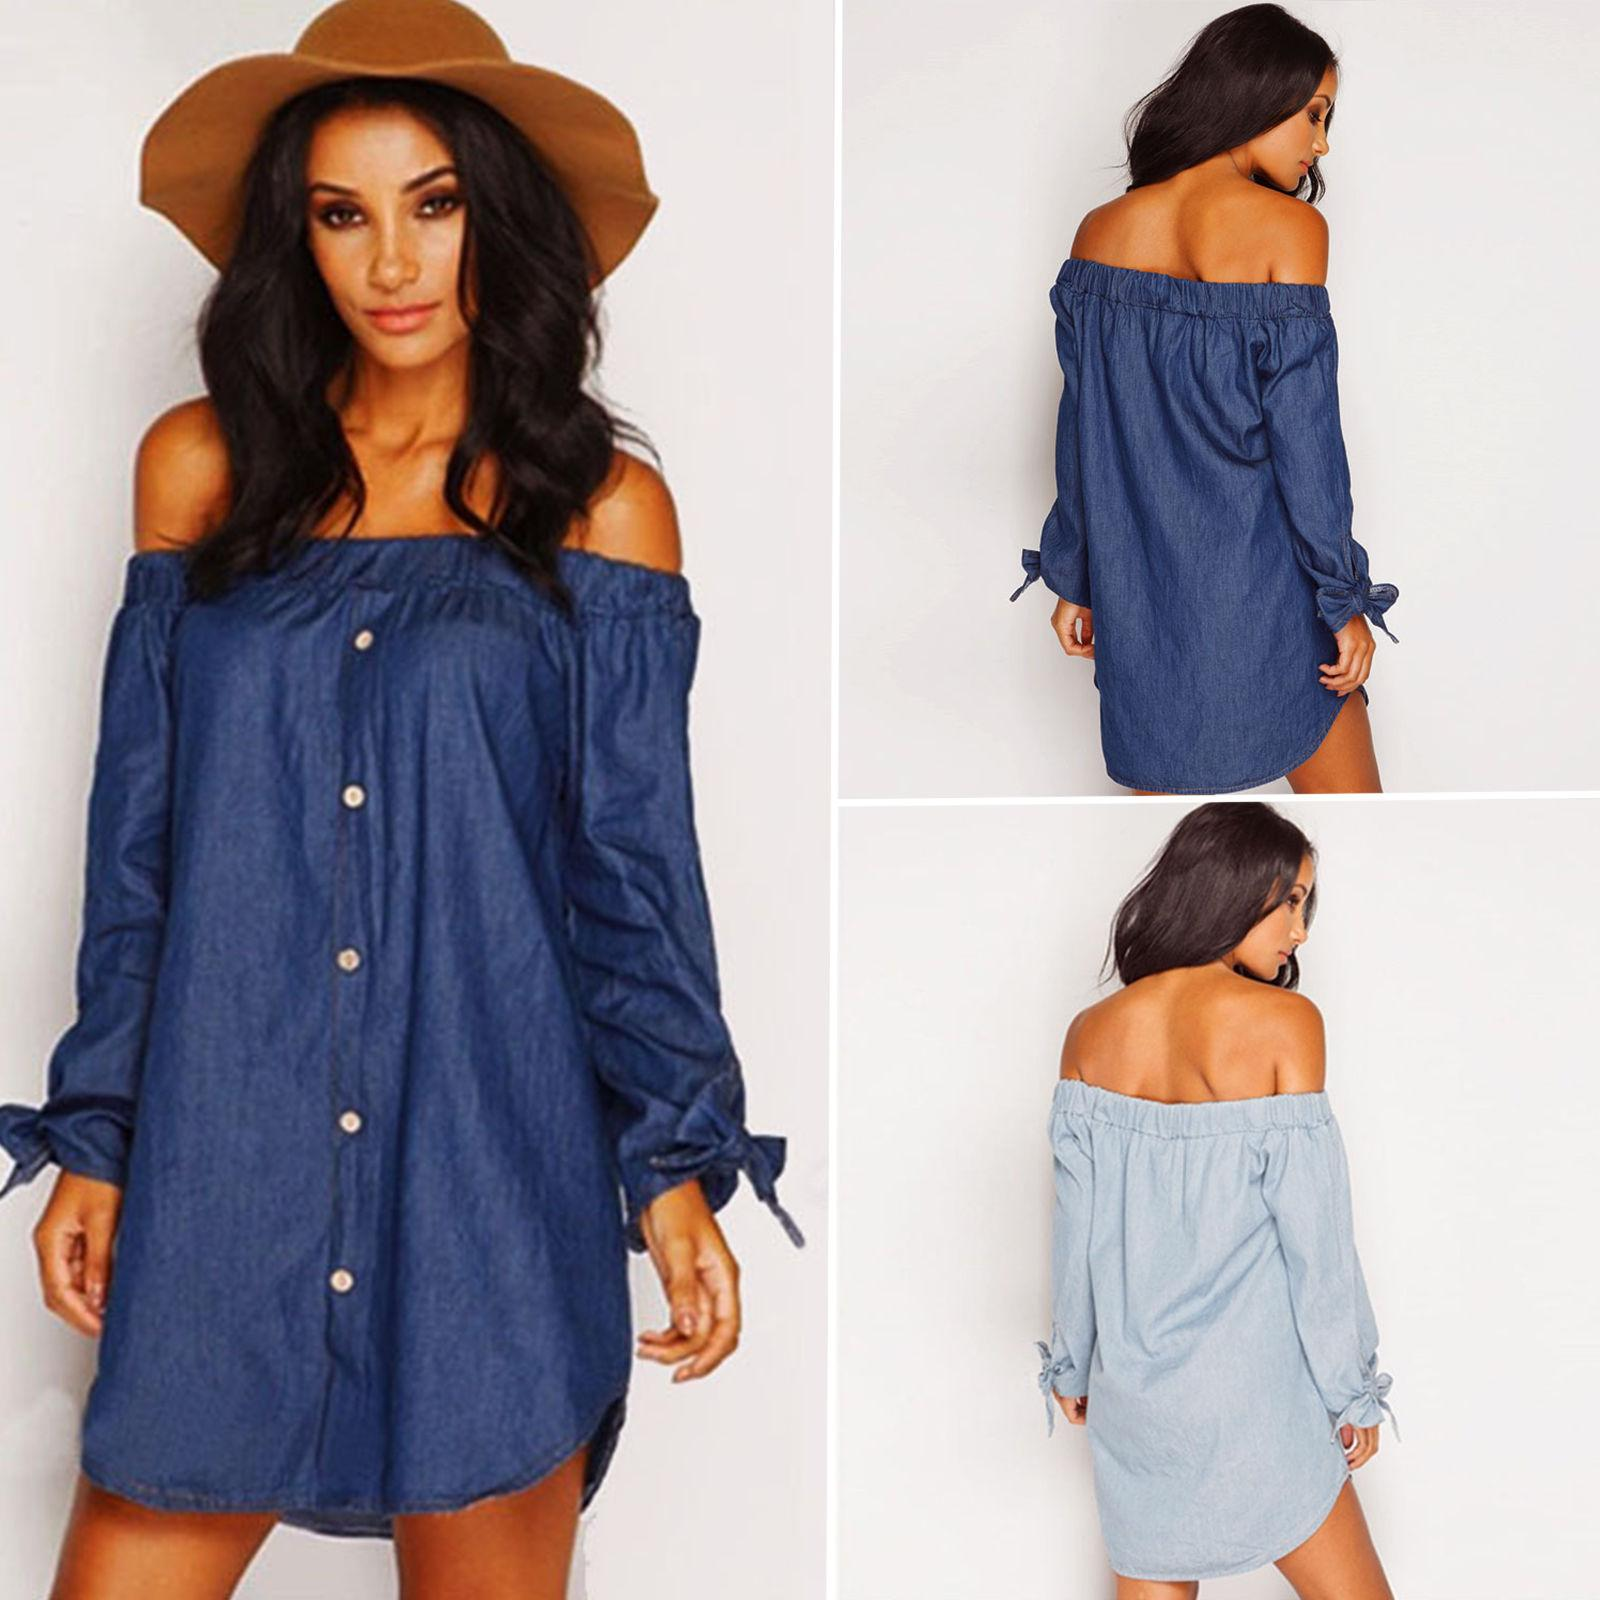 0cb1dcbda293 Dresses Women Denim Off Shoulder Dress Long Sleeve Denim Shirt Summer Sexy  Dress Tops Elegant Shirt Dresses Loose Slash Neck Blouse BBA154 Spring  Dresses ...